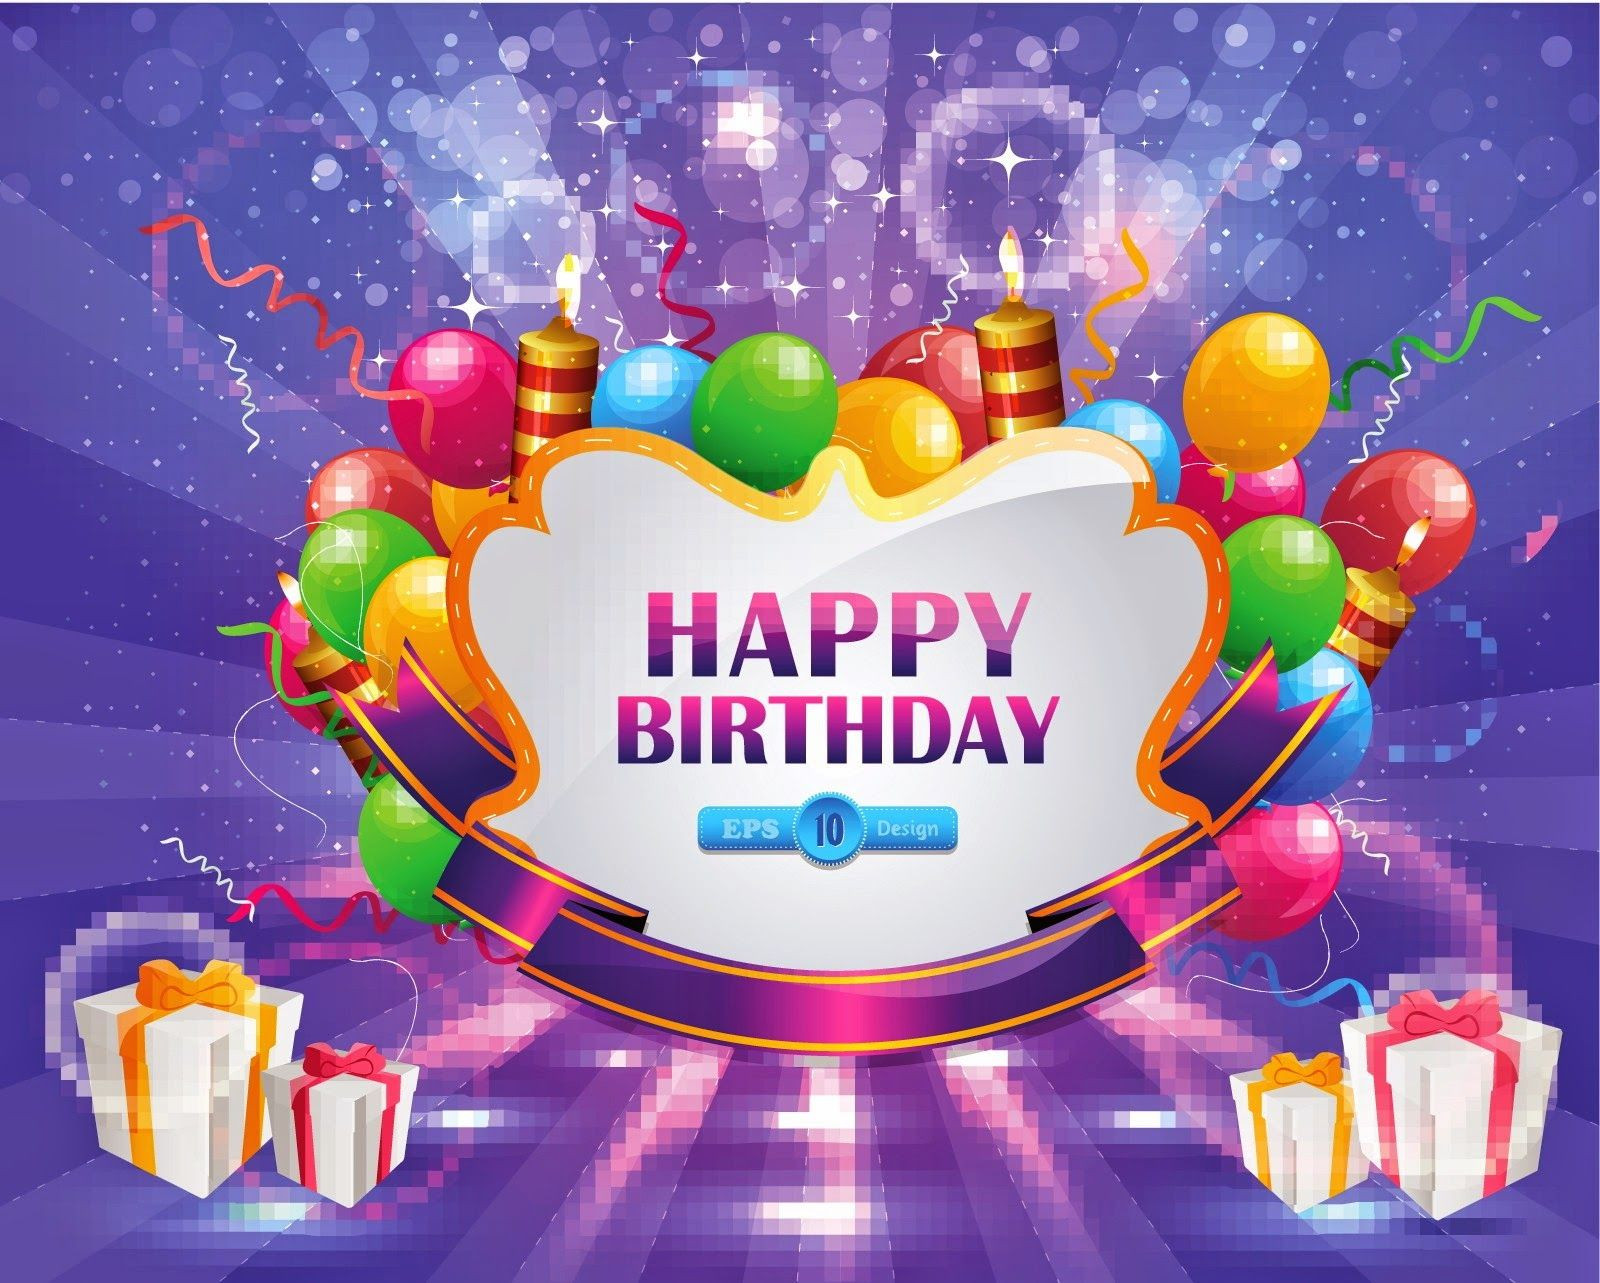 Free Download Birthday Wishes  Happy Birthday Quotes &